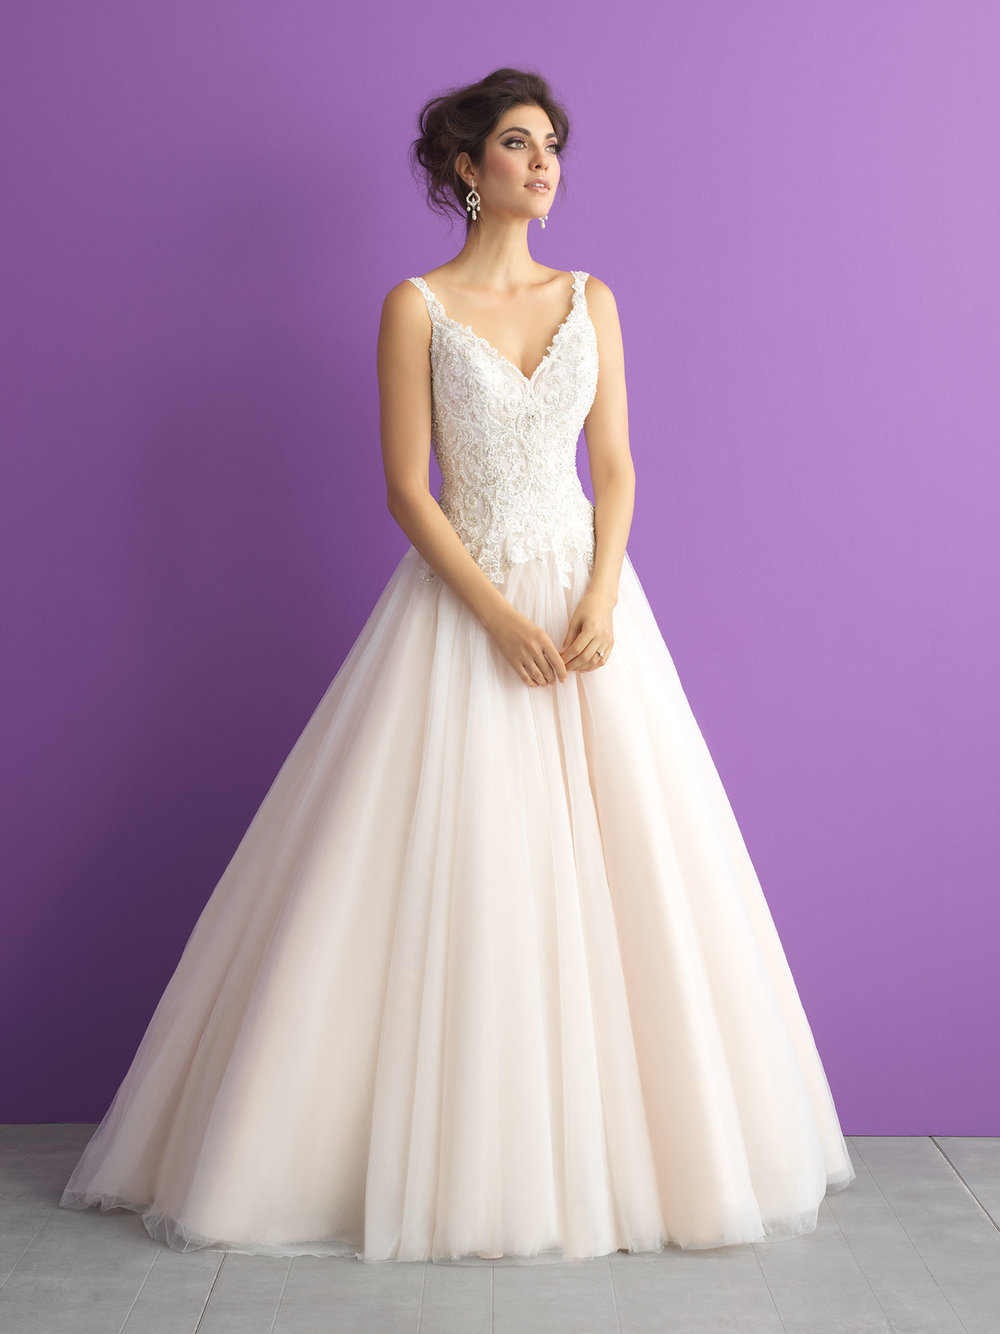 Style 3015 - A decadent beaded bodice offsets the simple skirt of this sleeveless ballgown.